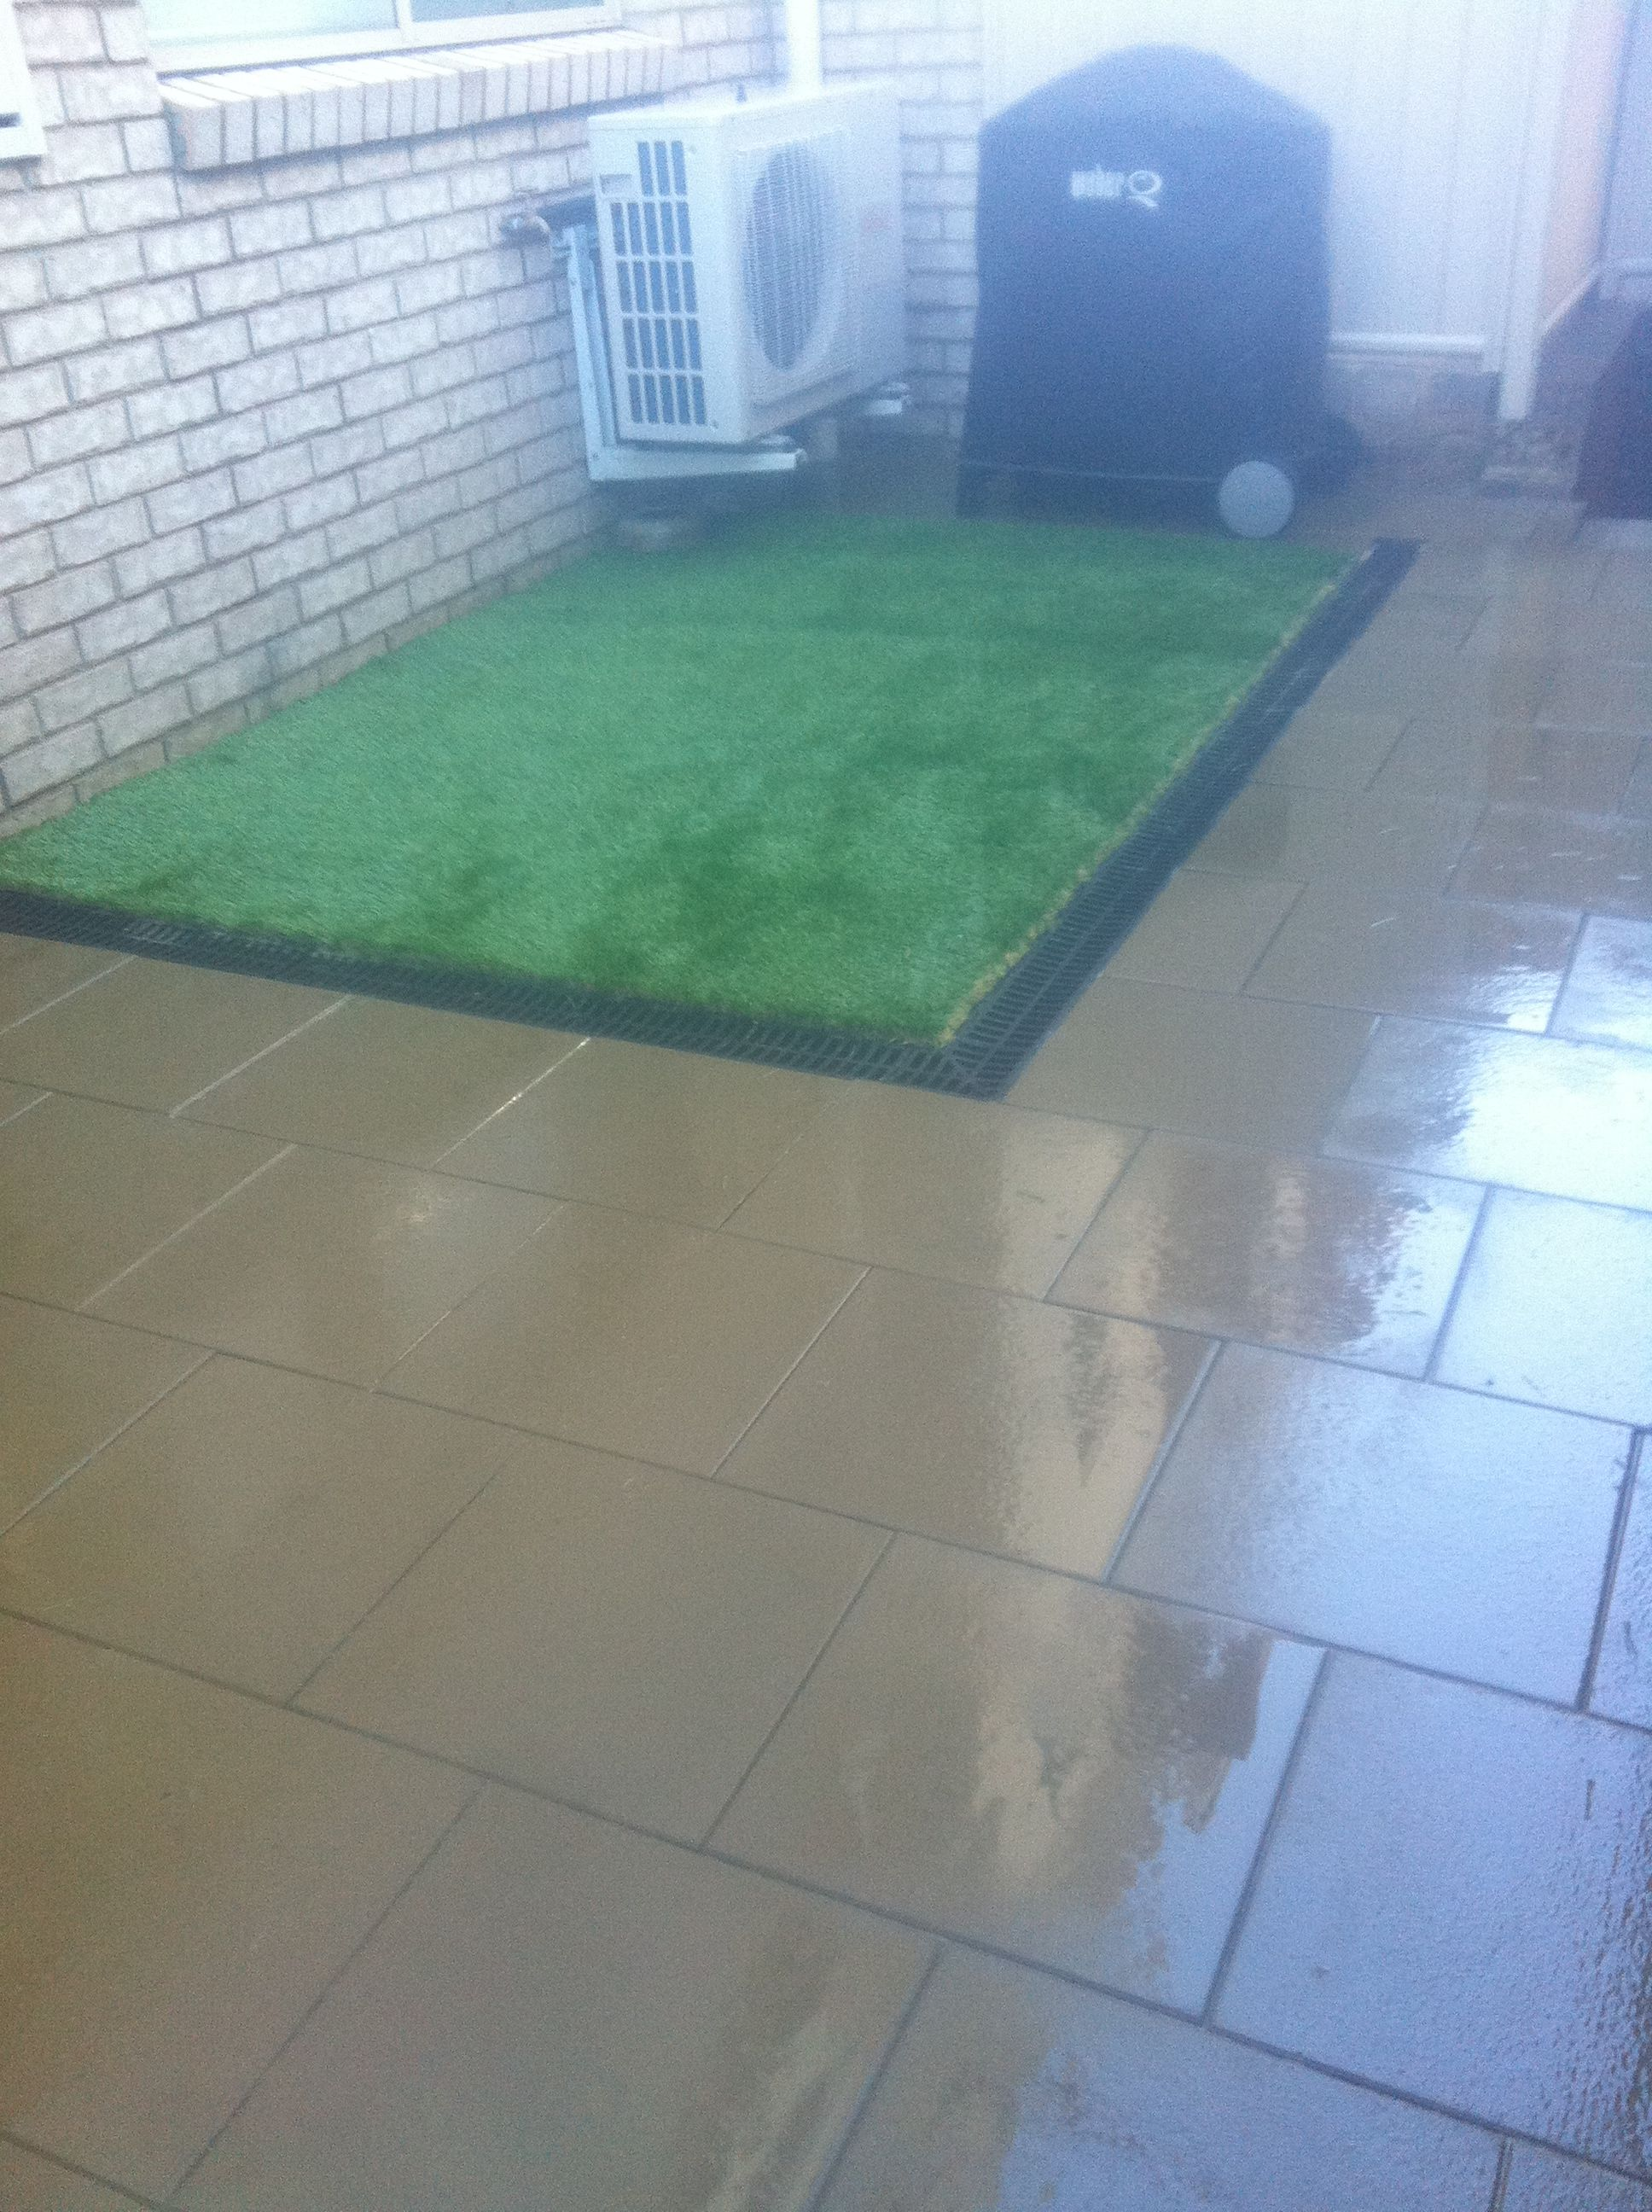 Courtyard Paving and Synthetic Turf. Paving, Courtyard Paving. Paving Design, Stretcher Bond. Paving Product, Adbri paver 'London'. Drainage, Channel drain and pit drain. Synthetic Turf, 35mm 3 Blend synthetic turf.